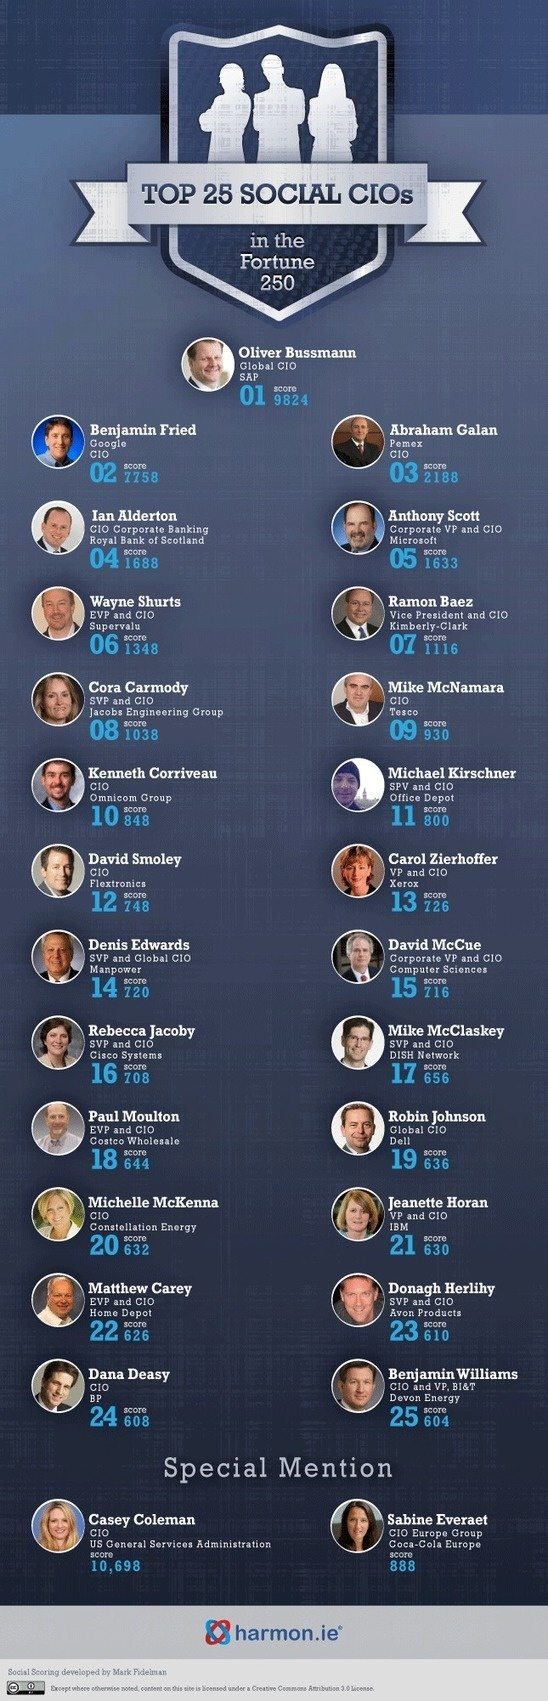 Top 25 Social CIOs in the Fortune 250 | harmon.ie